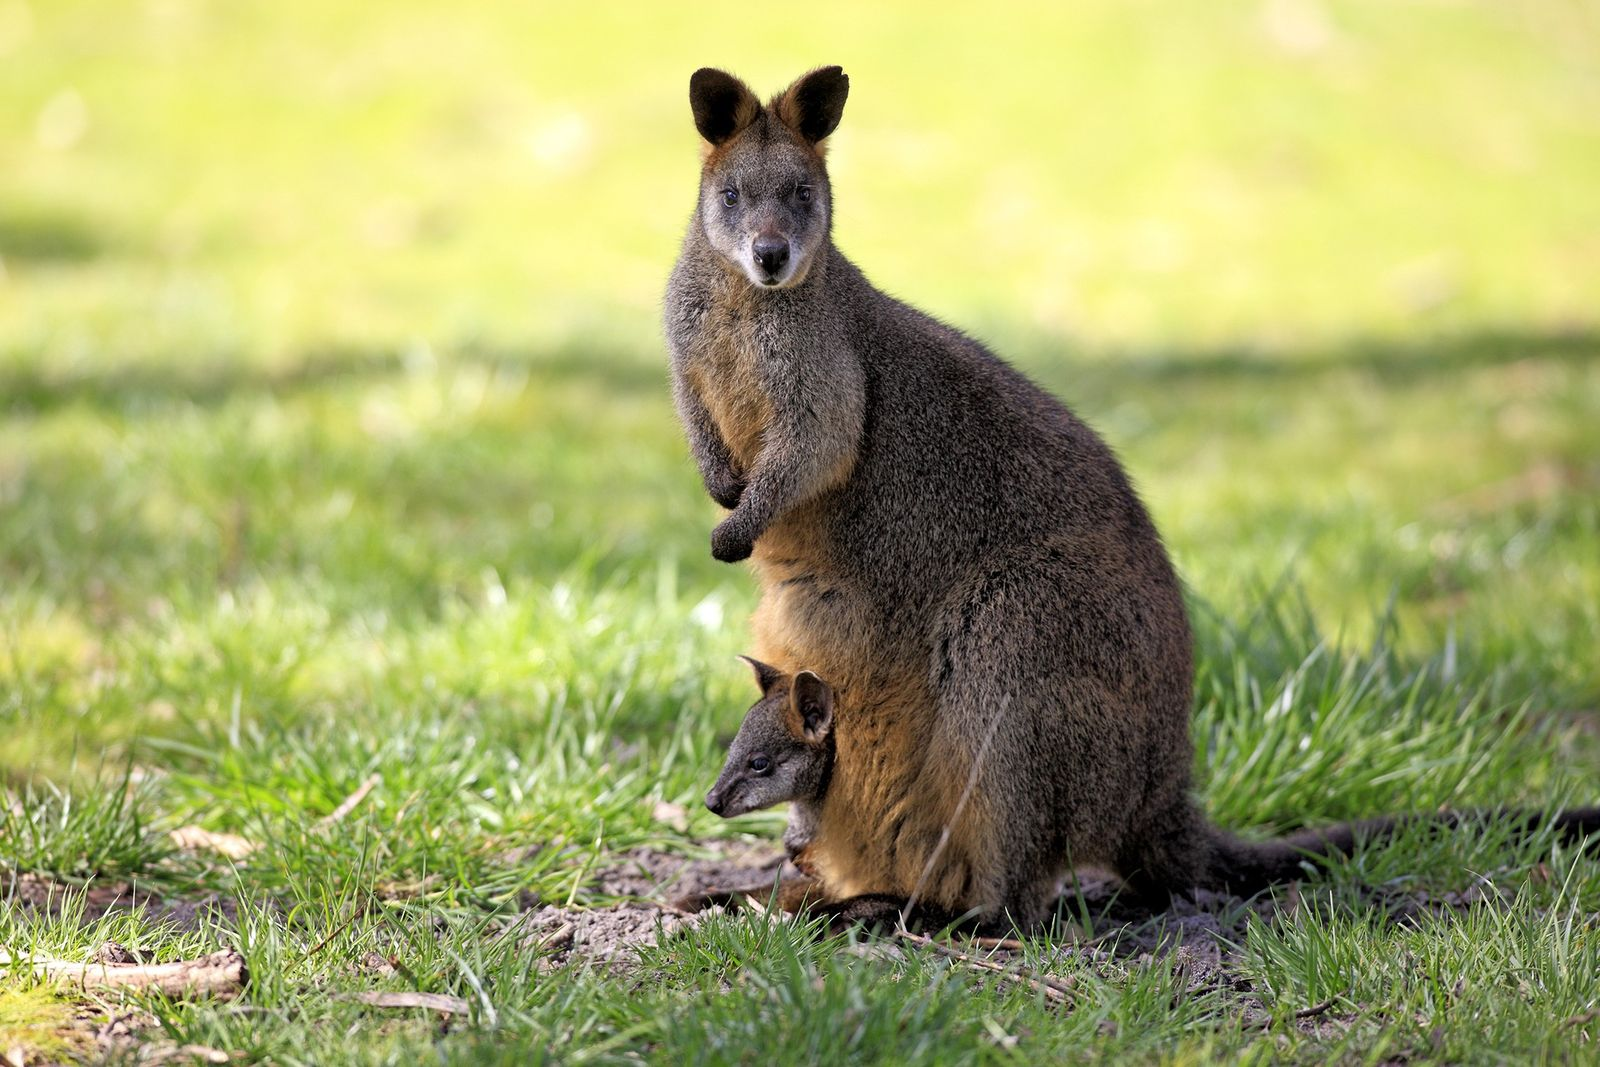 This marsupial is the only animal that's always pregnant